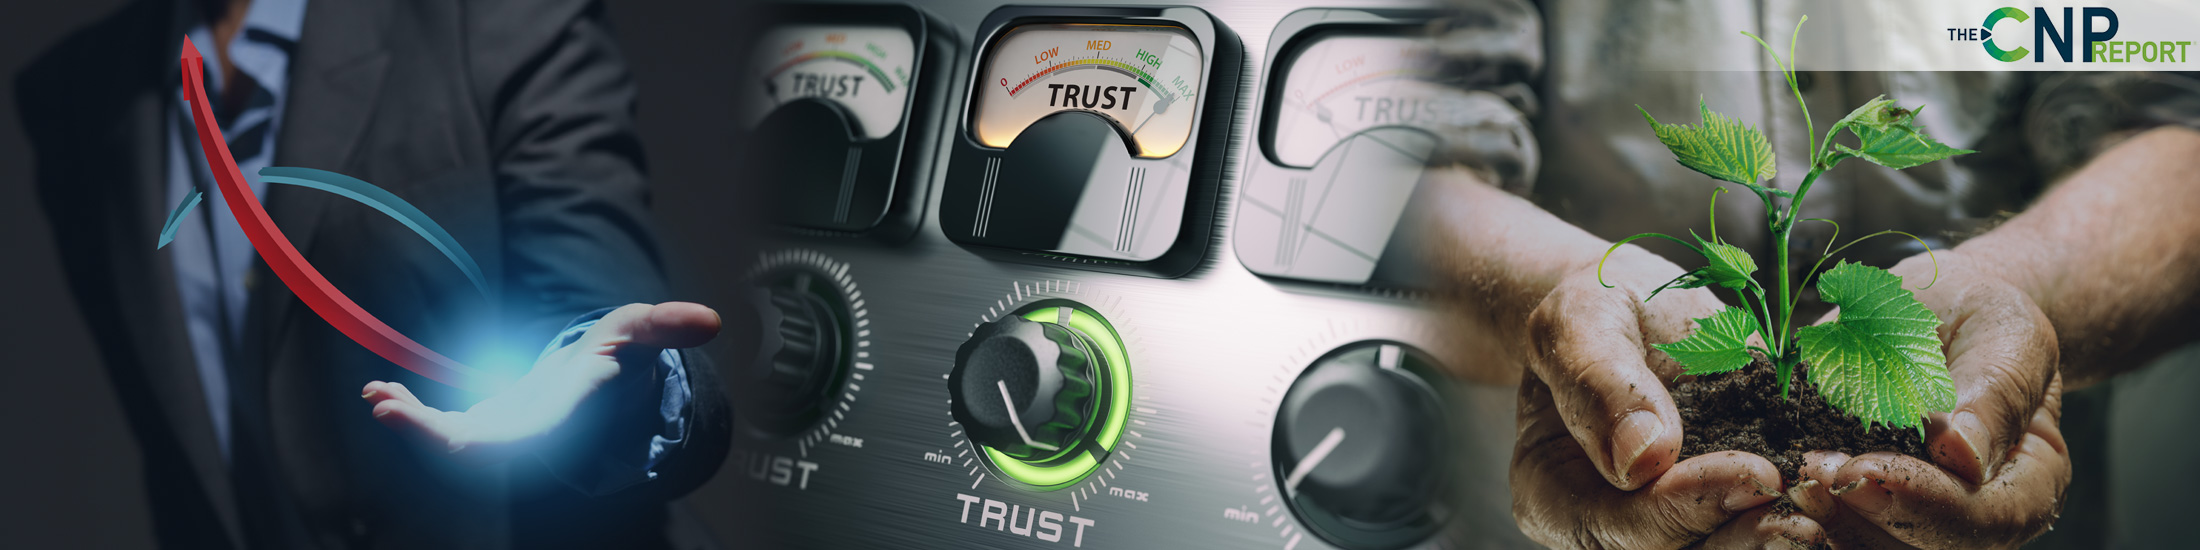 Brands Prioritizing Digital Trust and Safety See Growth